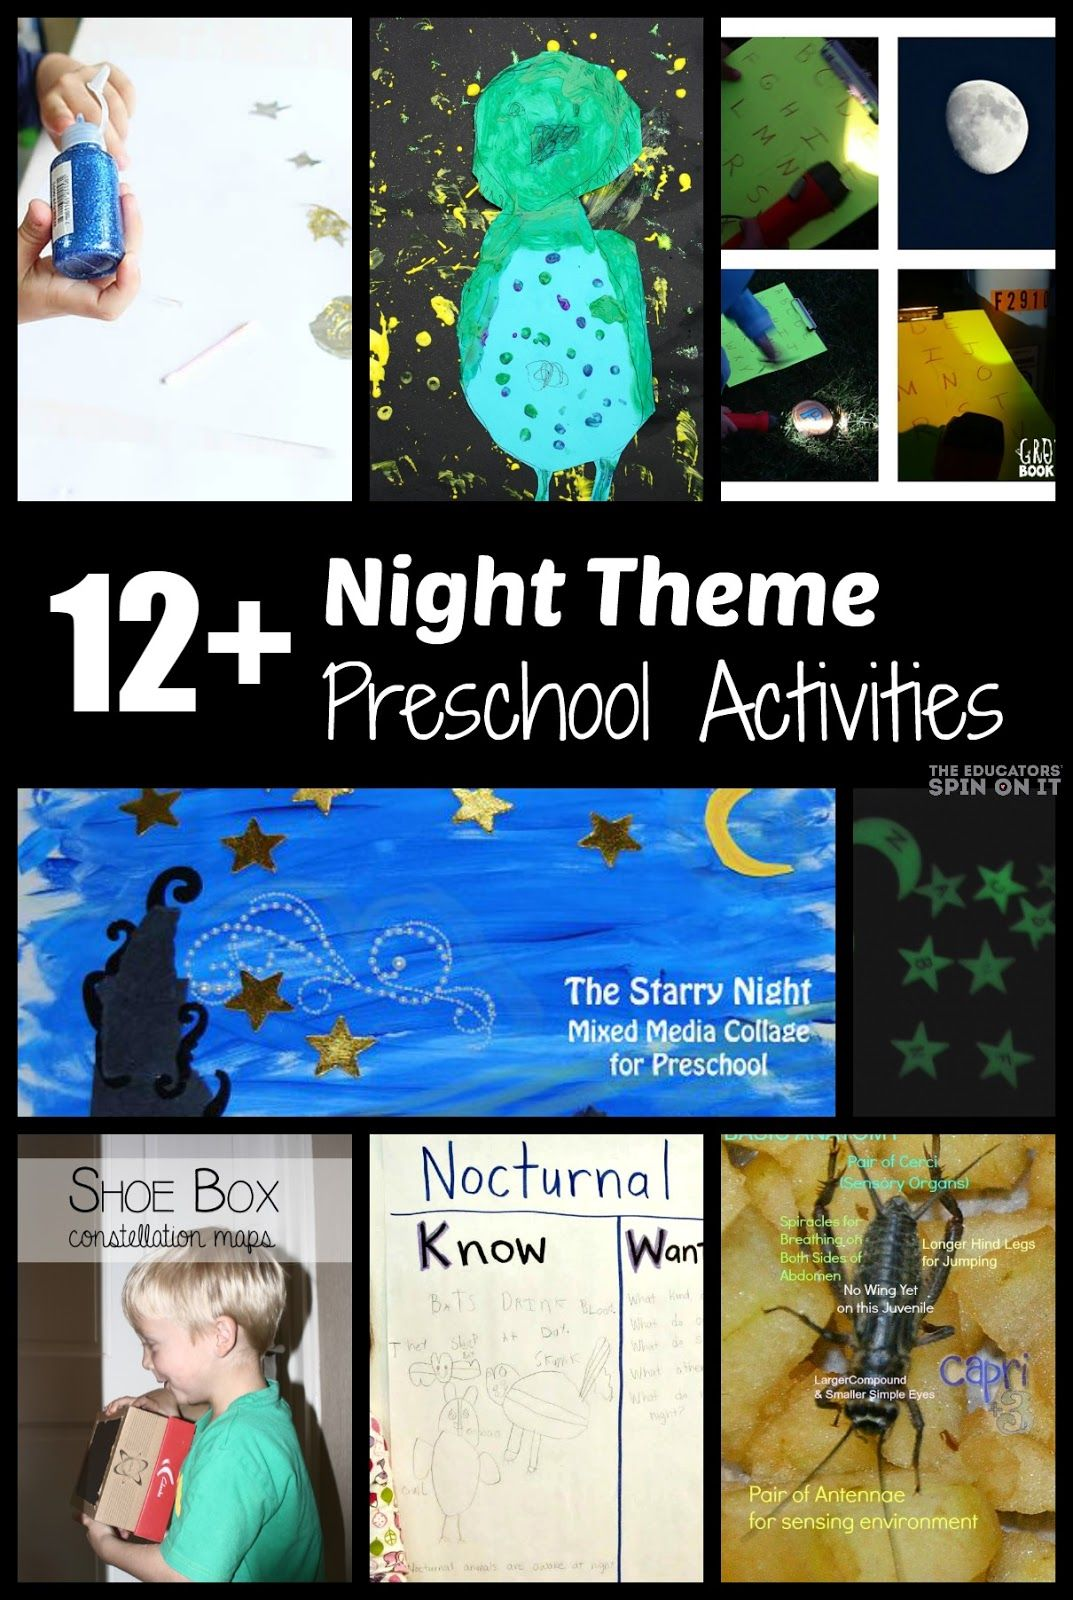 Nighttime Preschool Activities Night Owl Painting And